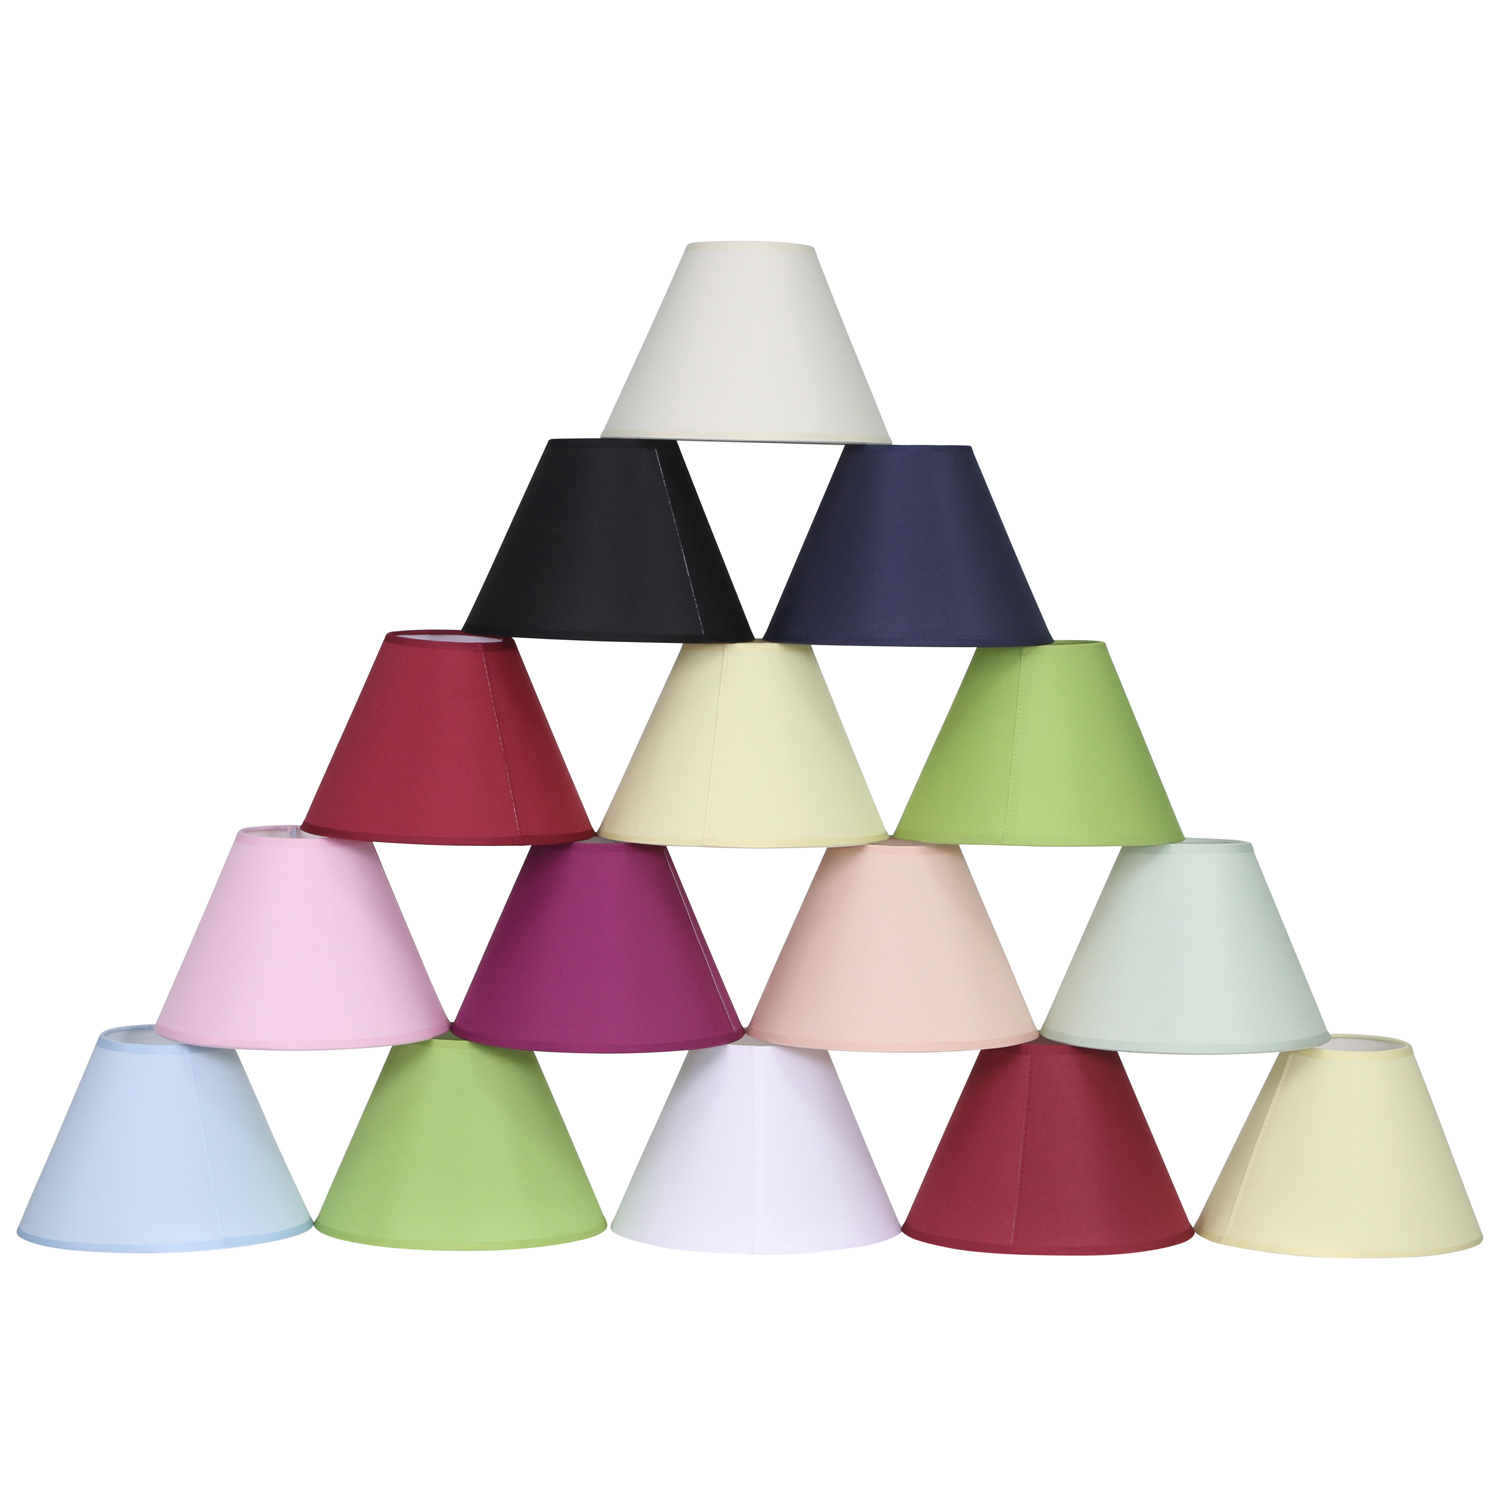 Contemporary plastic lampshades lightshades ebay 12 coolie ceiling table lamp shade black cream lilac lime red white wine geotapseo Image collections